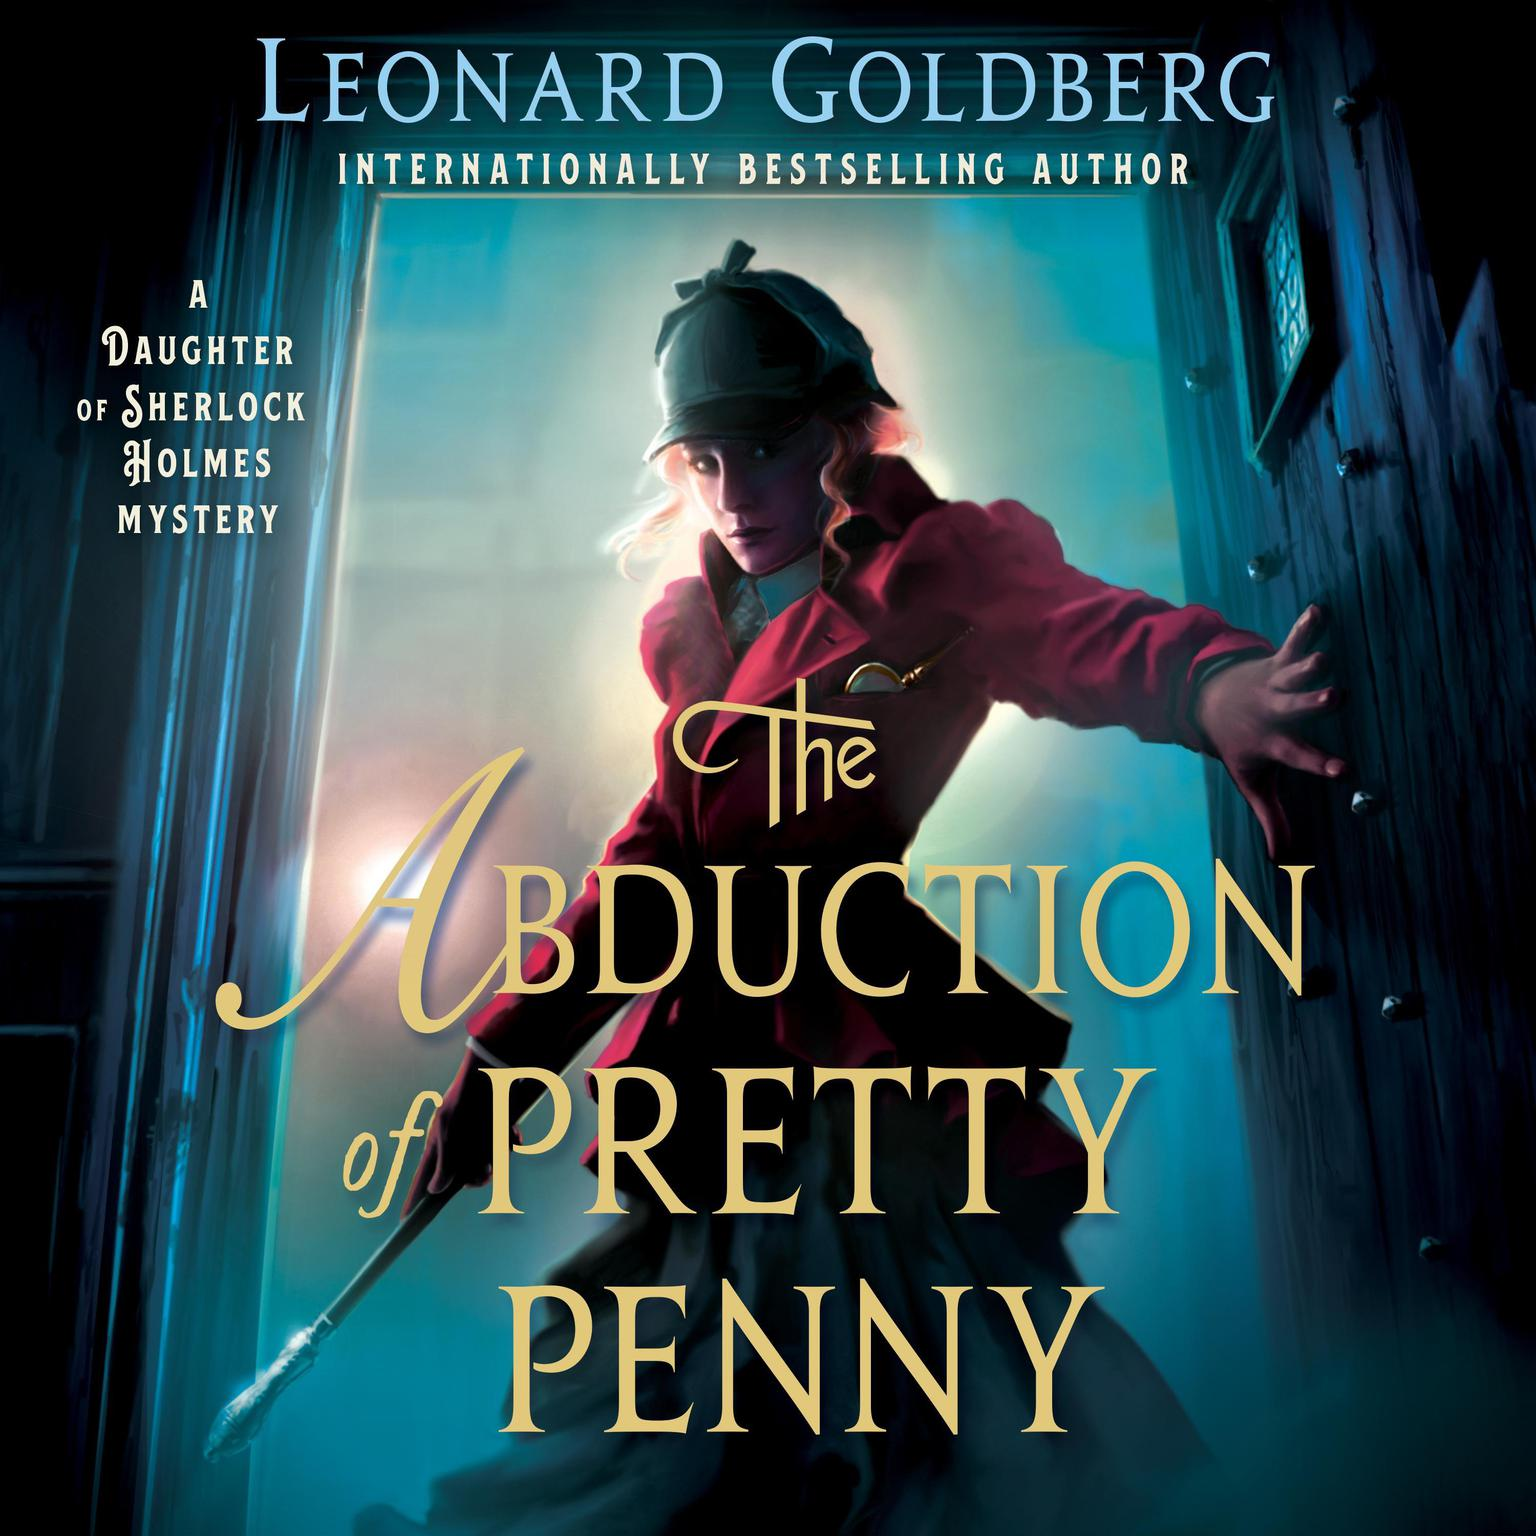 The Abduction of Pretty Penny: A Daughter of Sherlock Holmes Mystery Audiobook, by Leonard Goldberg